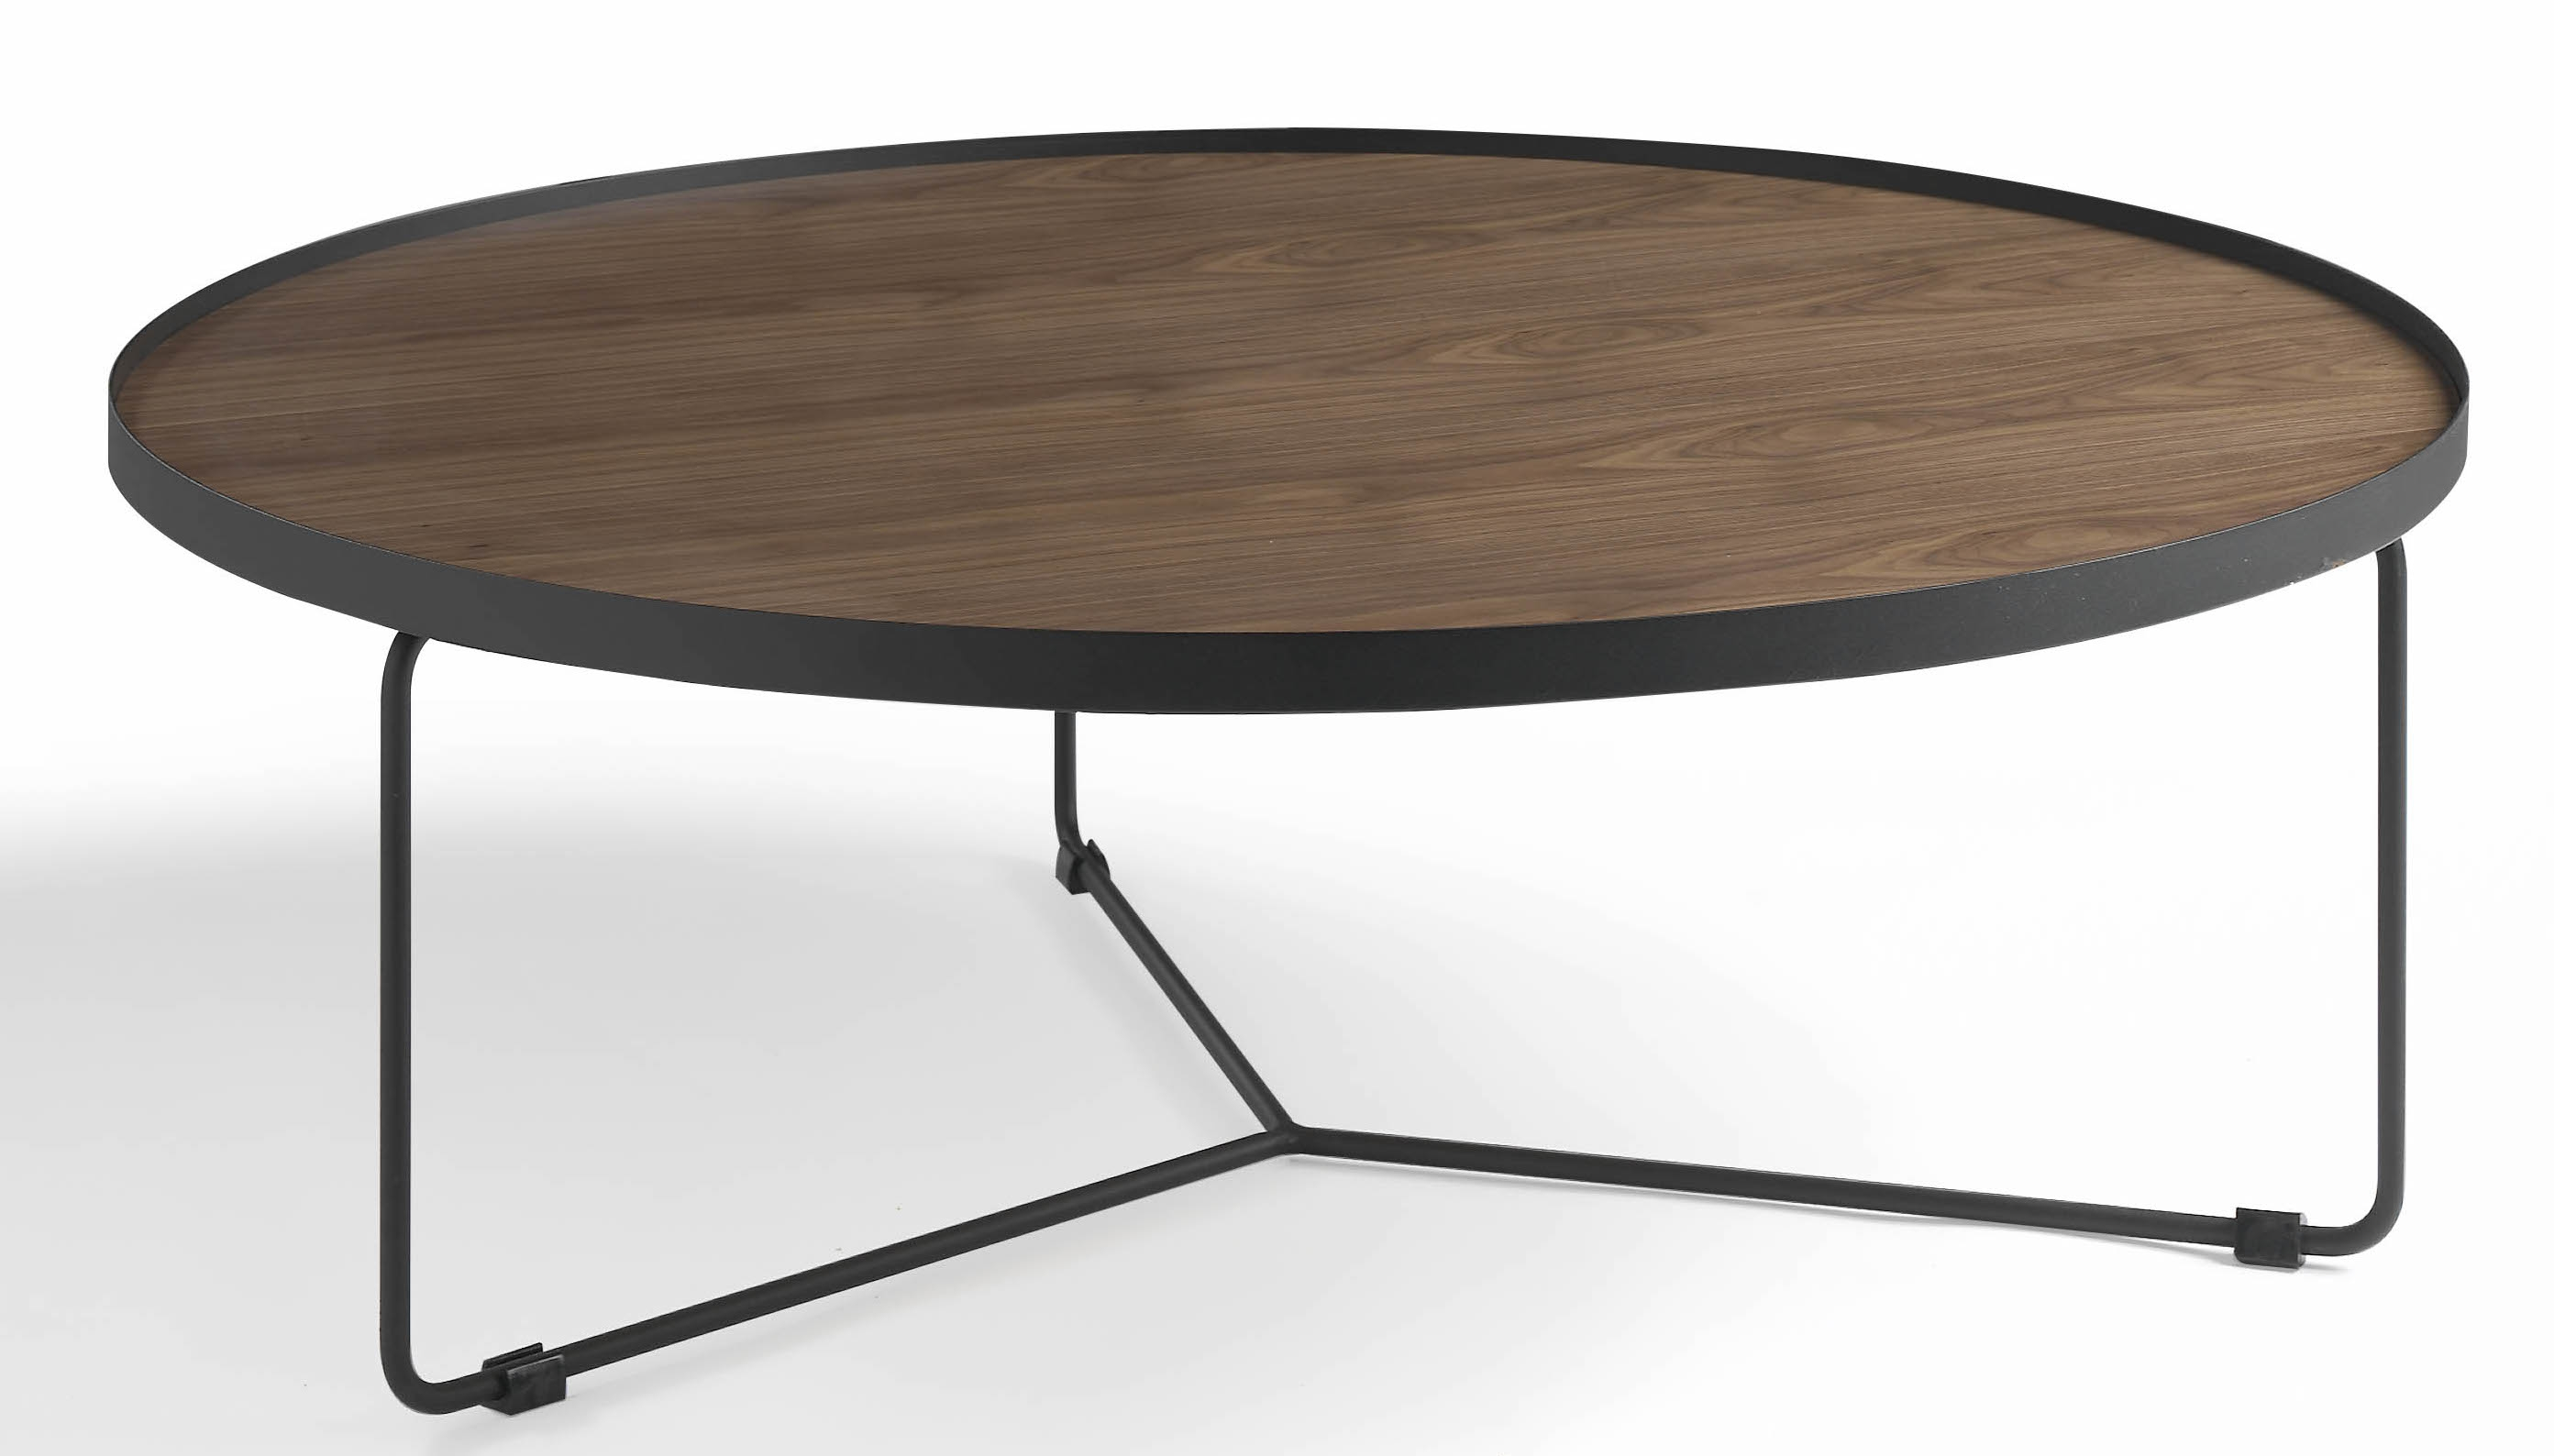 table basse ronde bois noyer et m tal noir noka. Black Bedroom Furniture Sets. Home Design Ideas